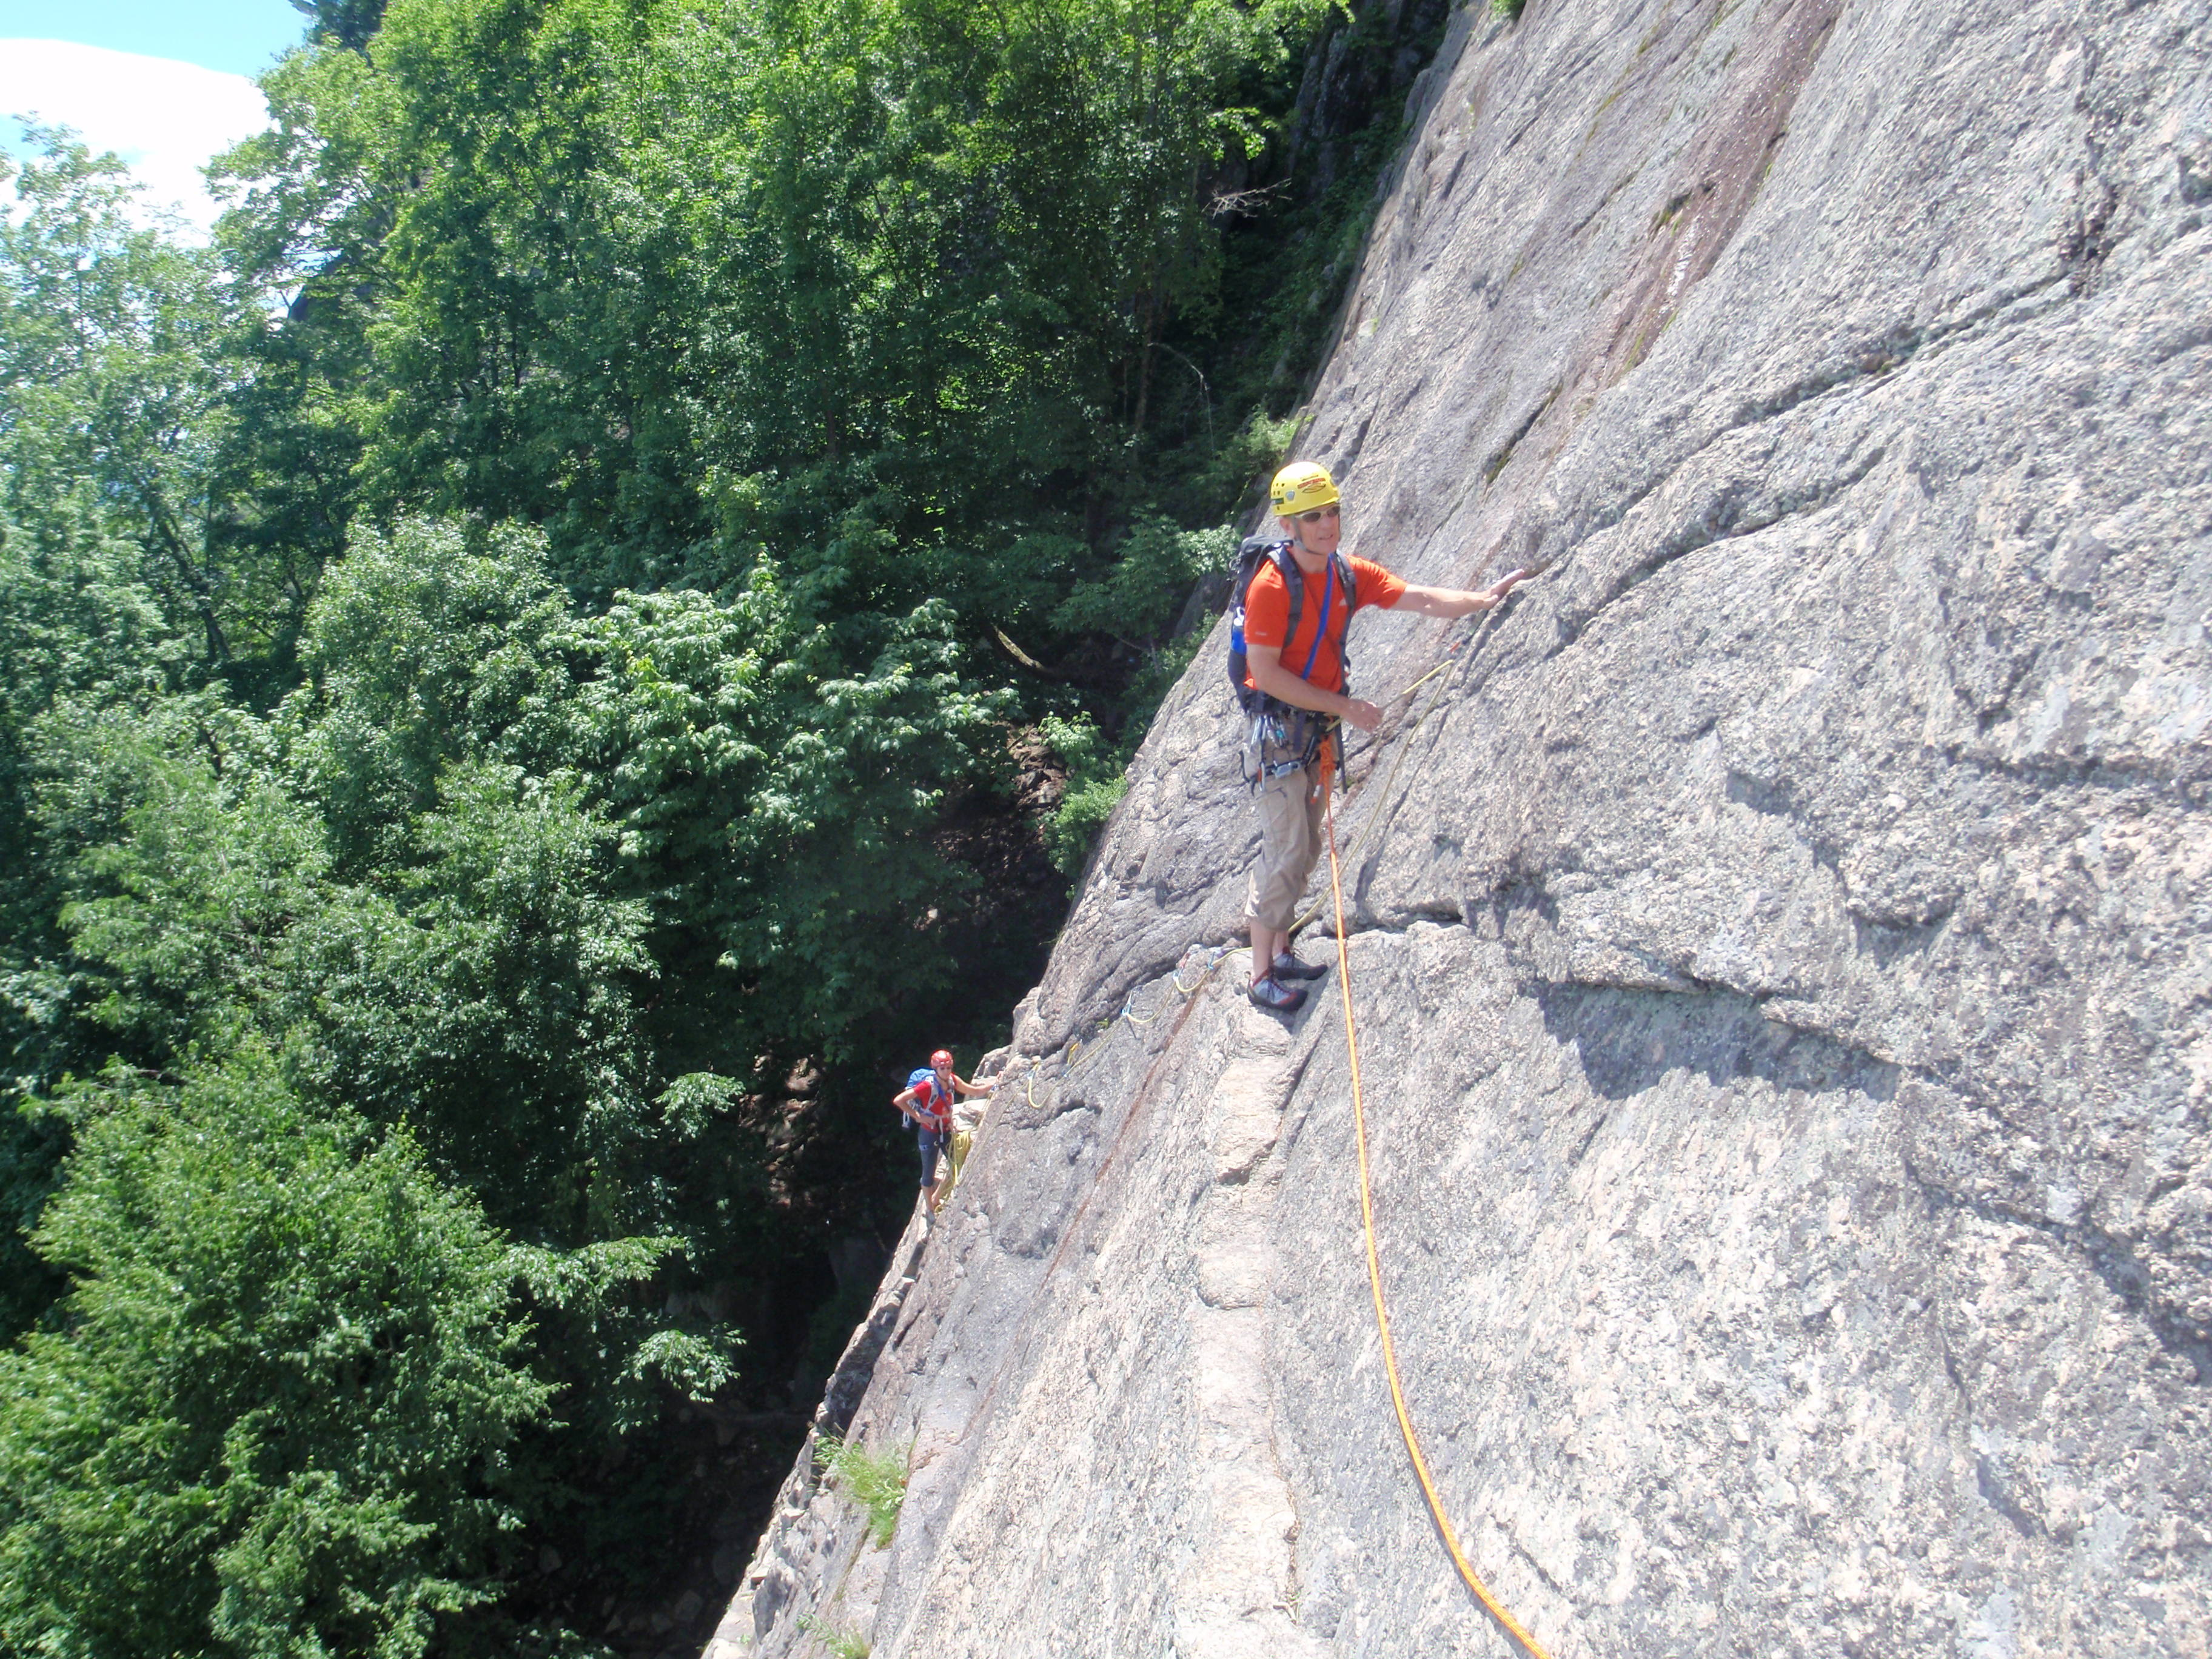 Crossing the traverse on Pitch 2 of Thin Air